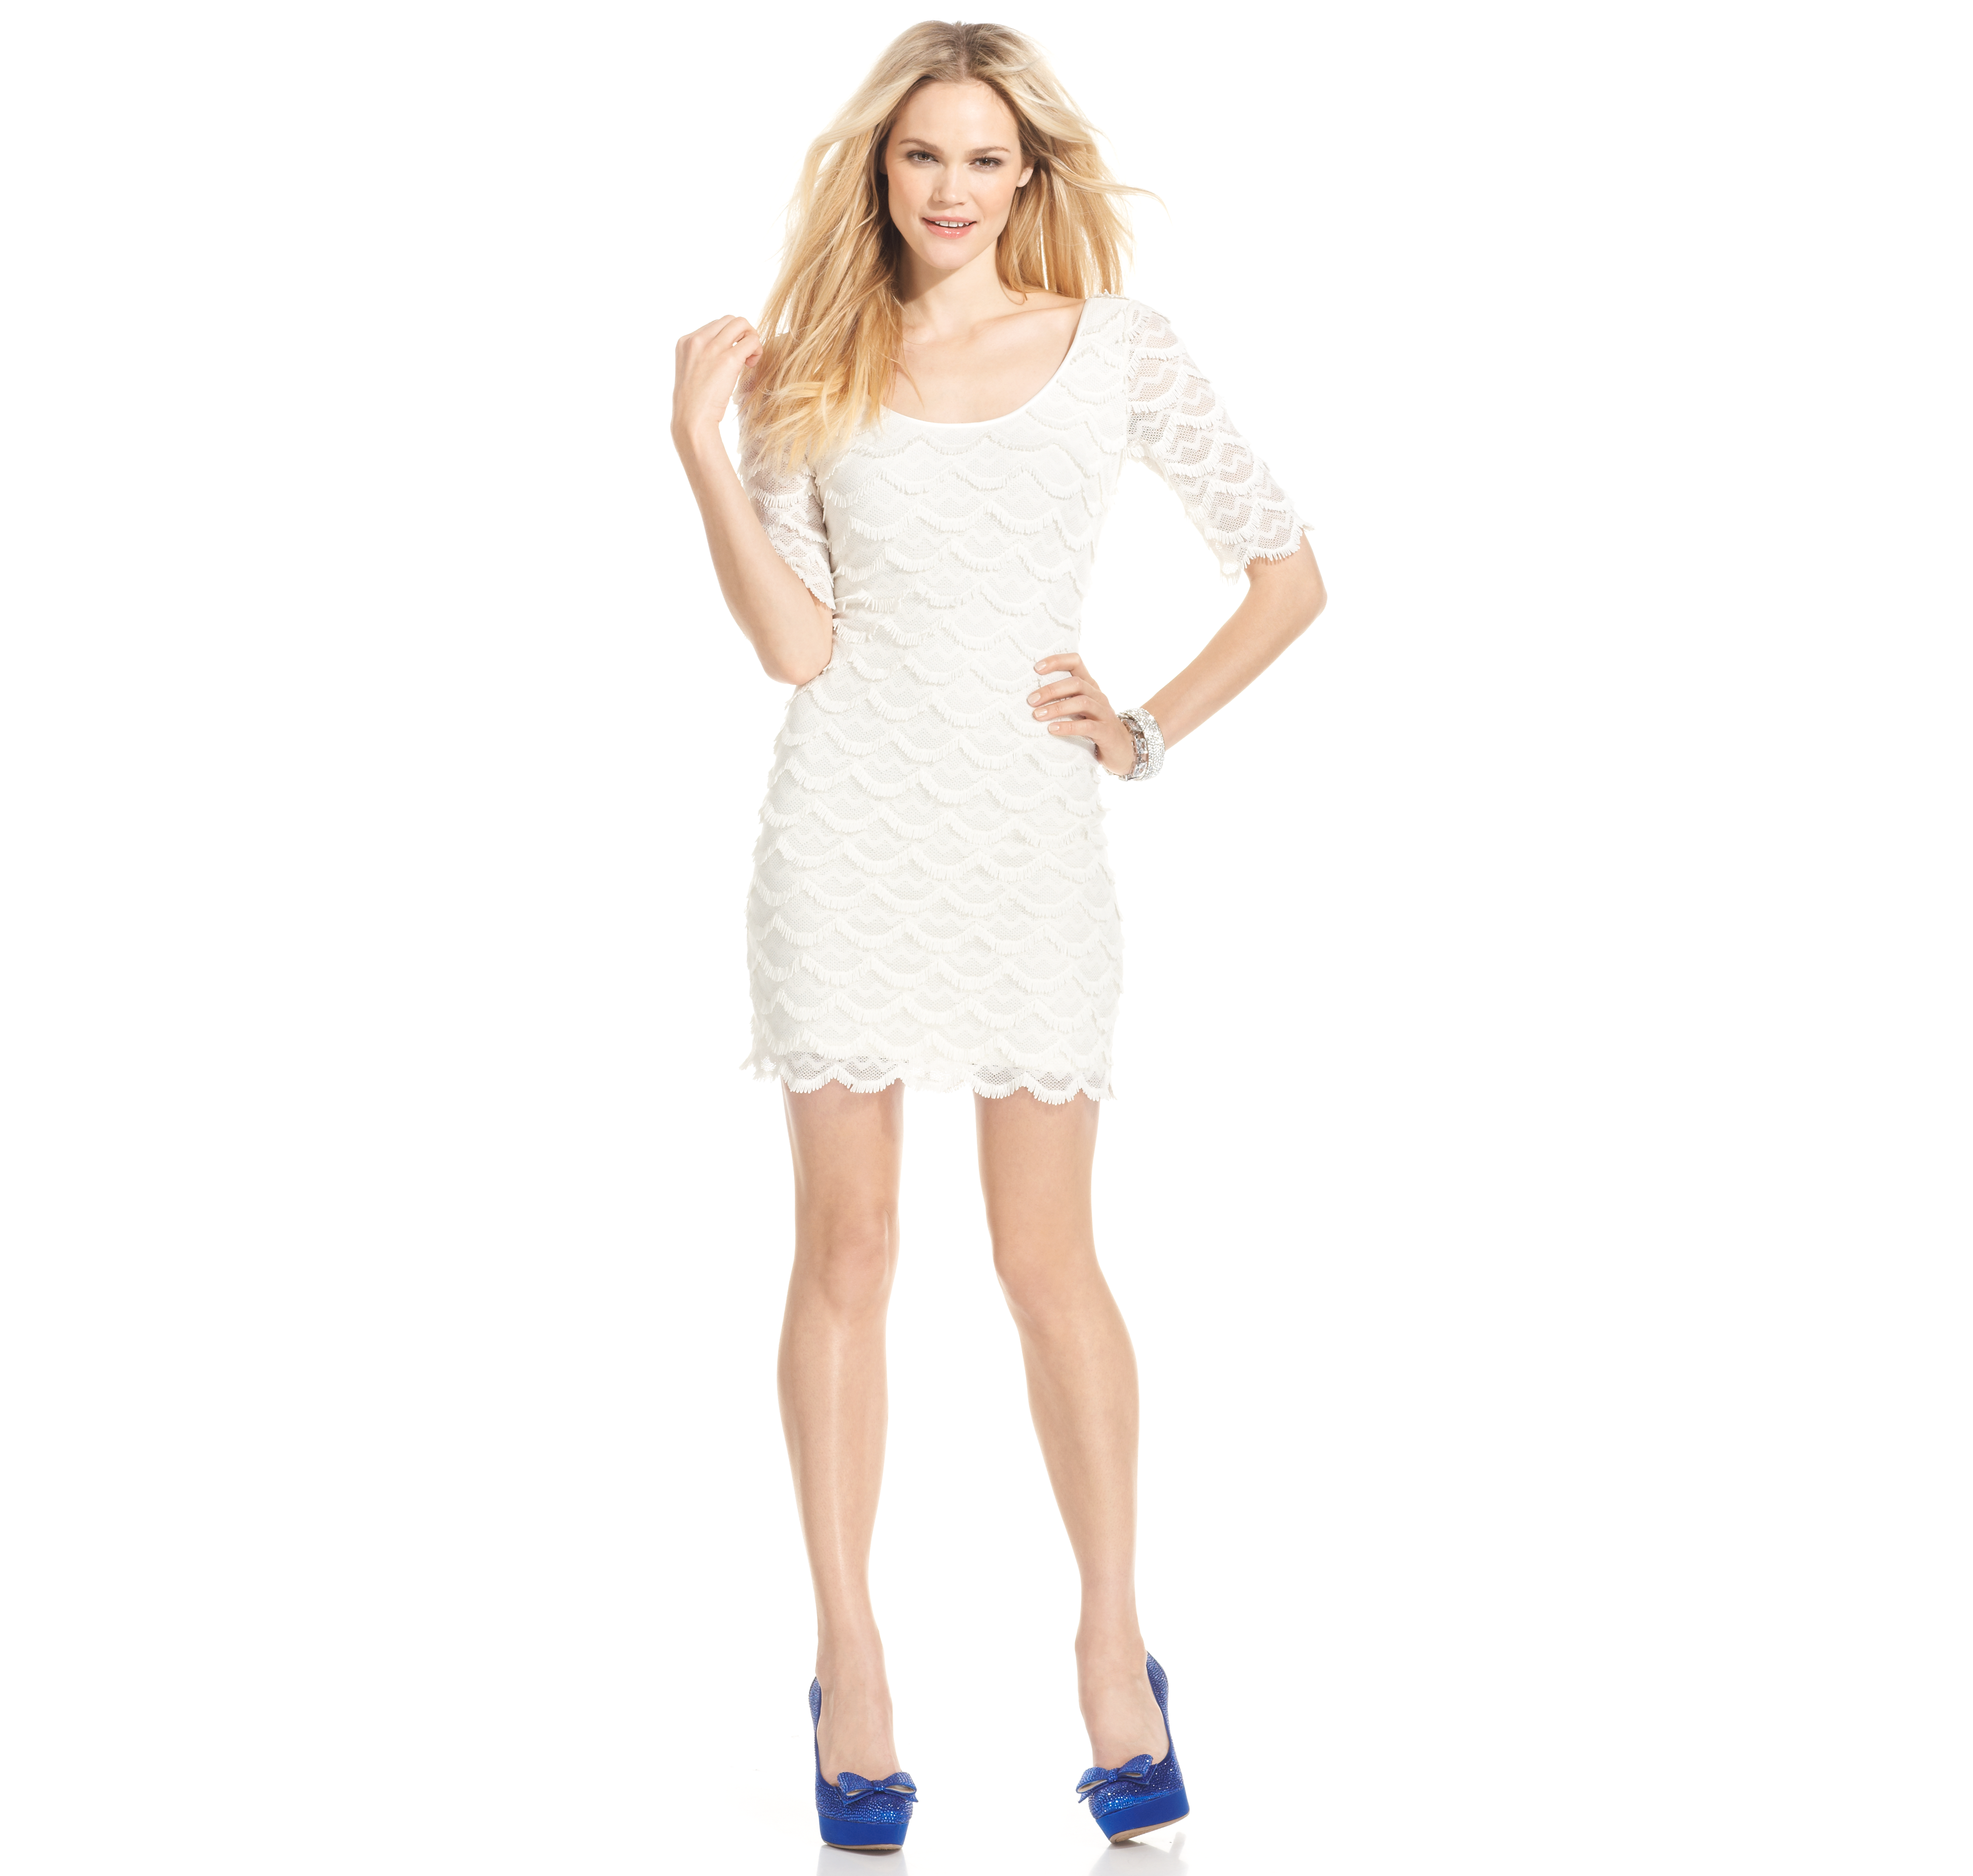 Guess Short-Sleeve Scalloped Lace Dress